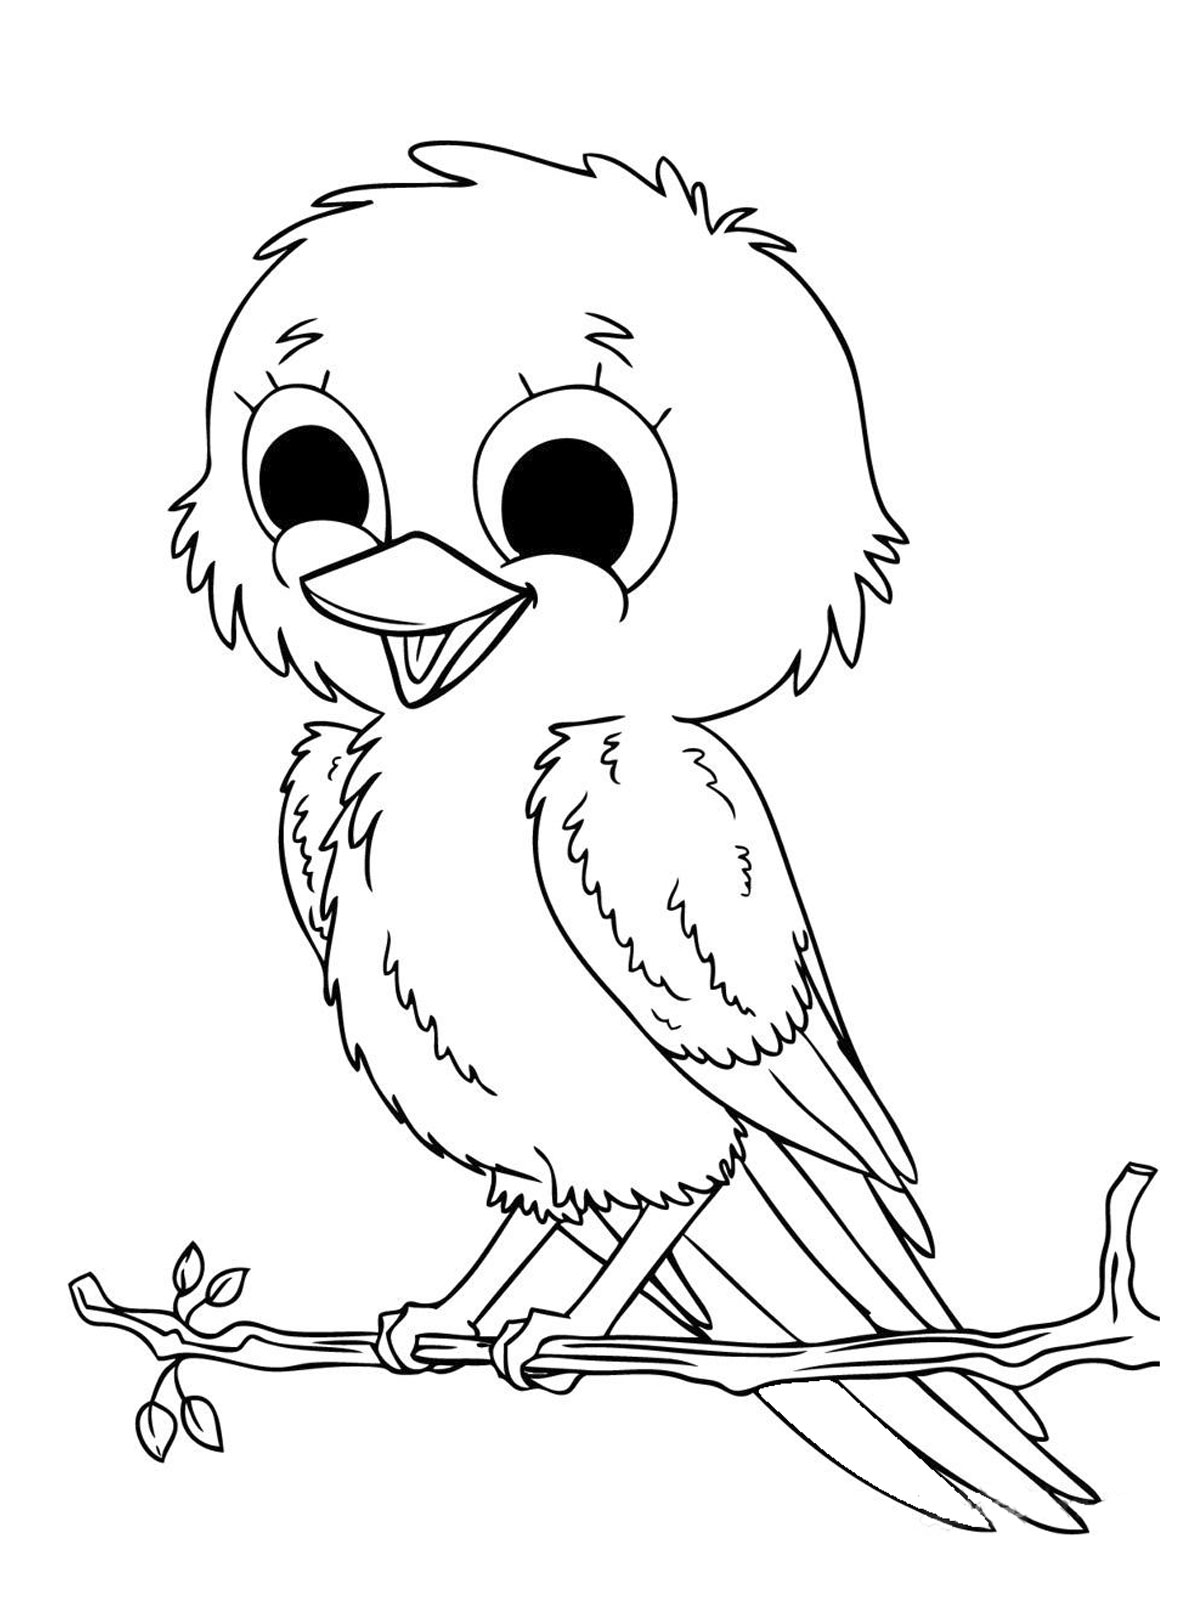 Animal Coloring Pages For Teens At Getcolorings